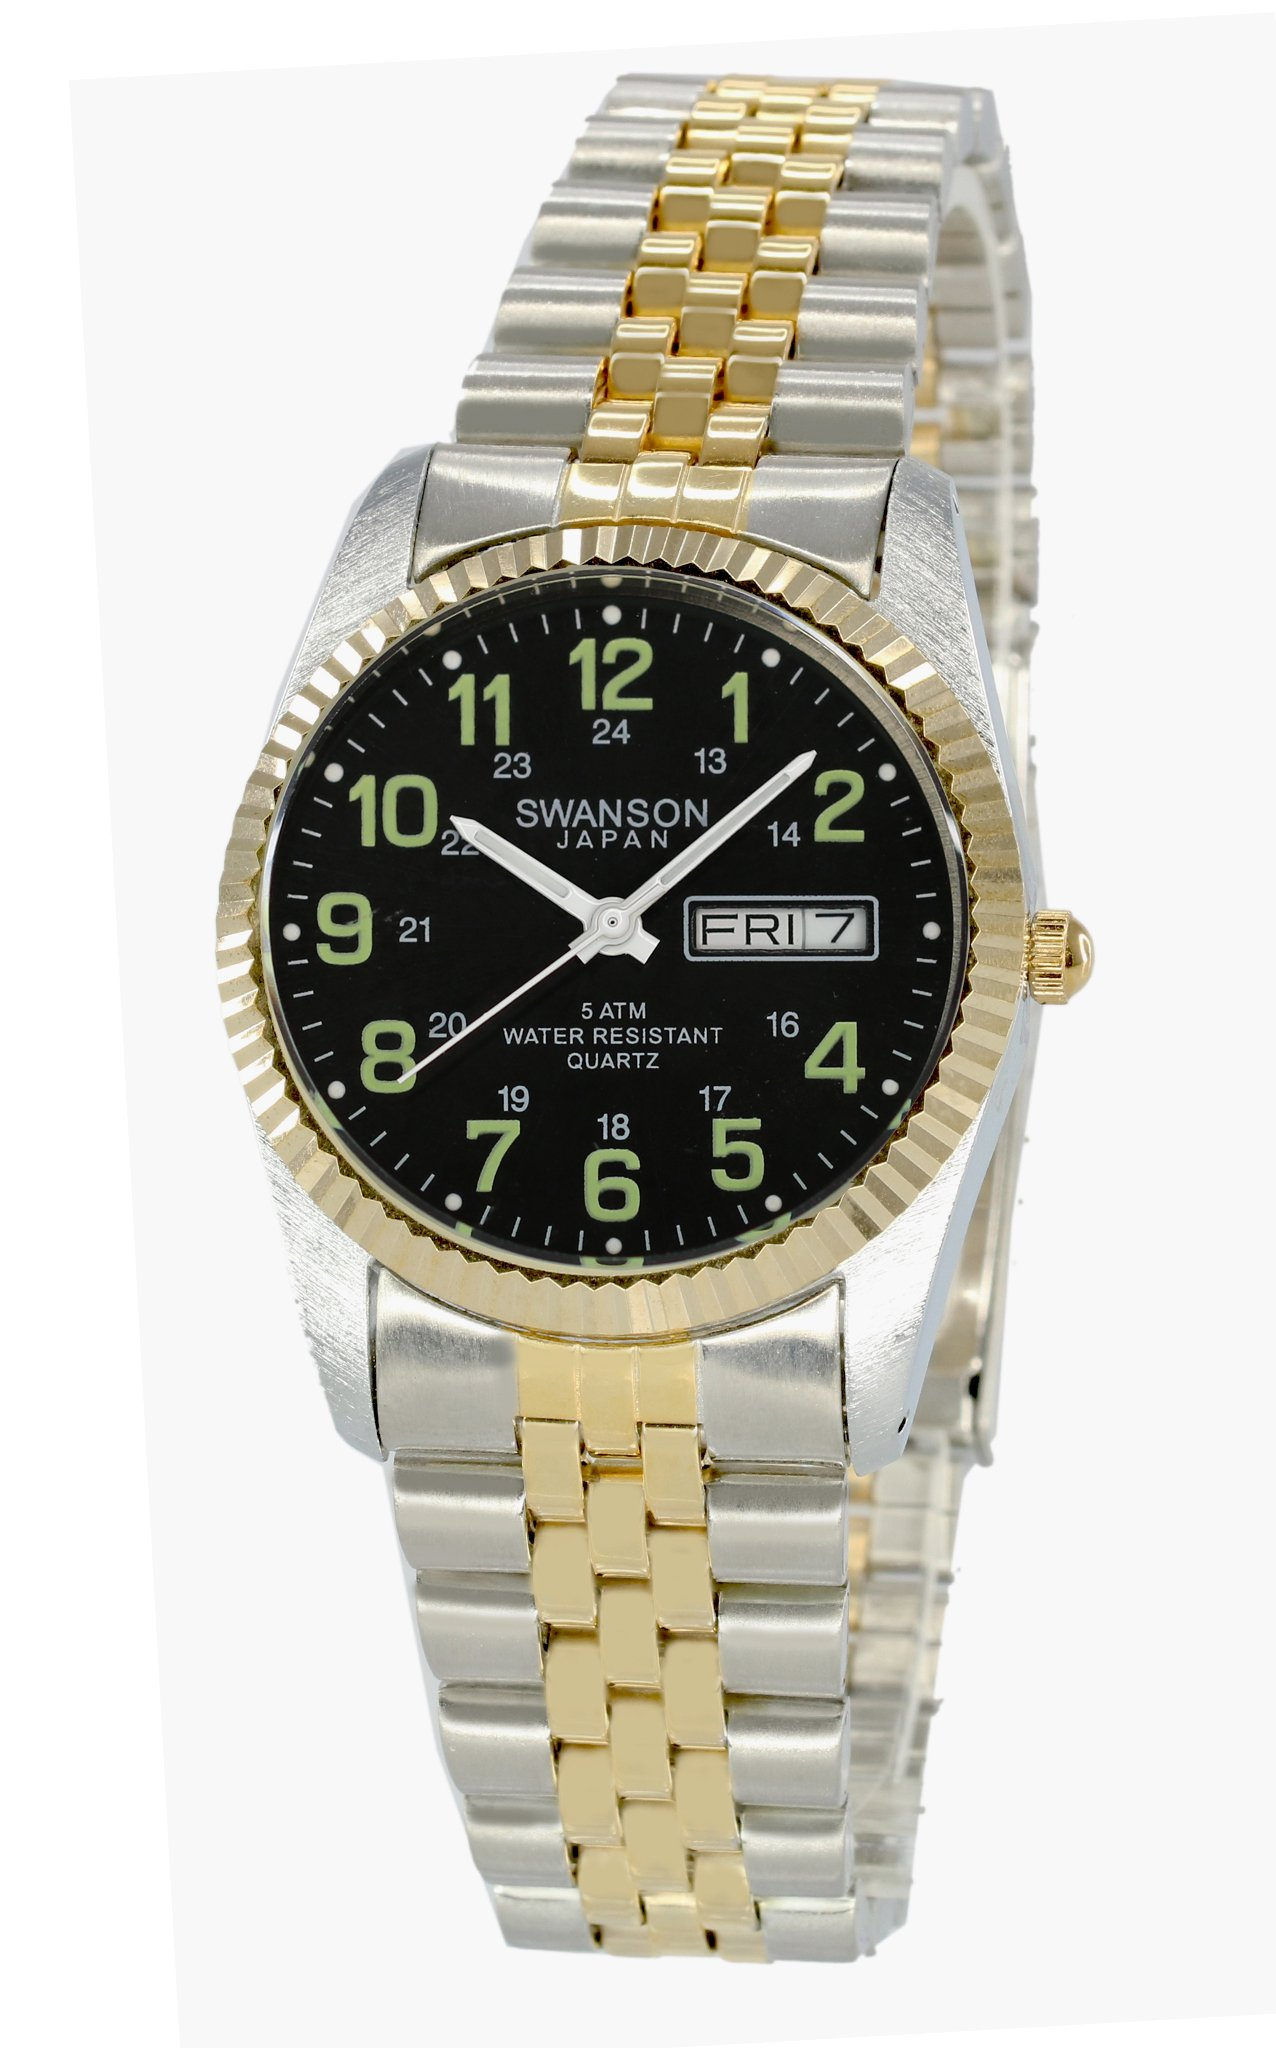 Swanson Japan Men's Two-Tone Day-Date Black Dial with Glow Military Numbers Watch within Travel Case